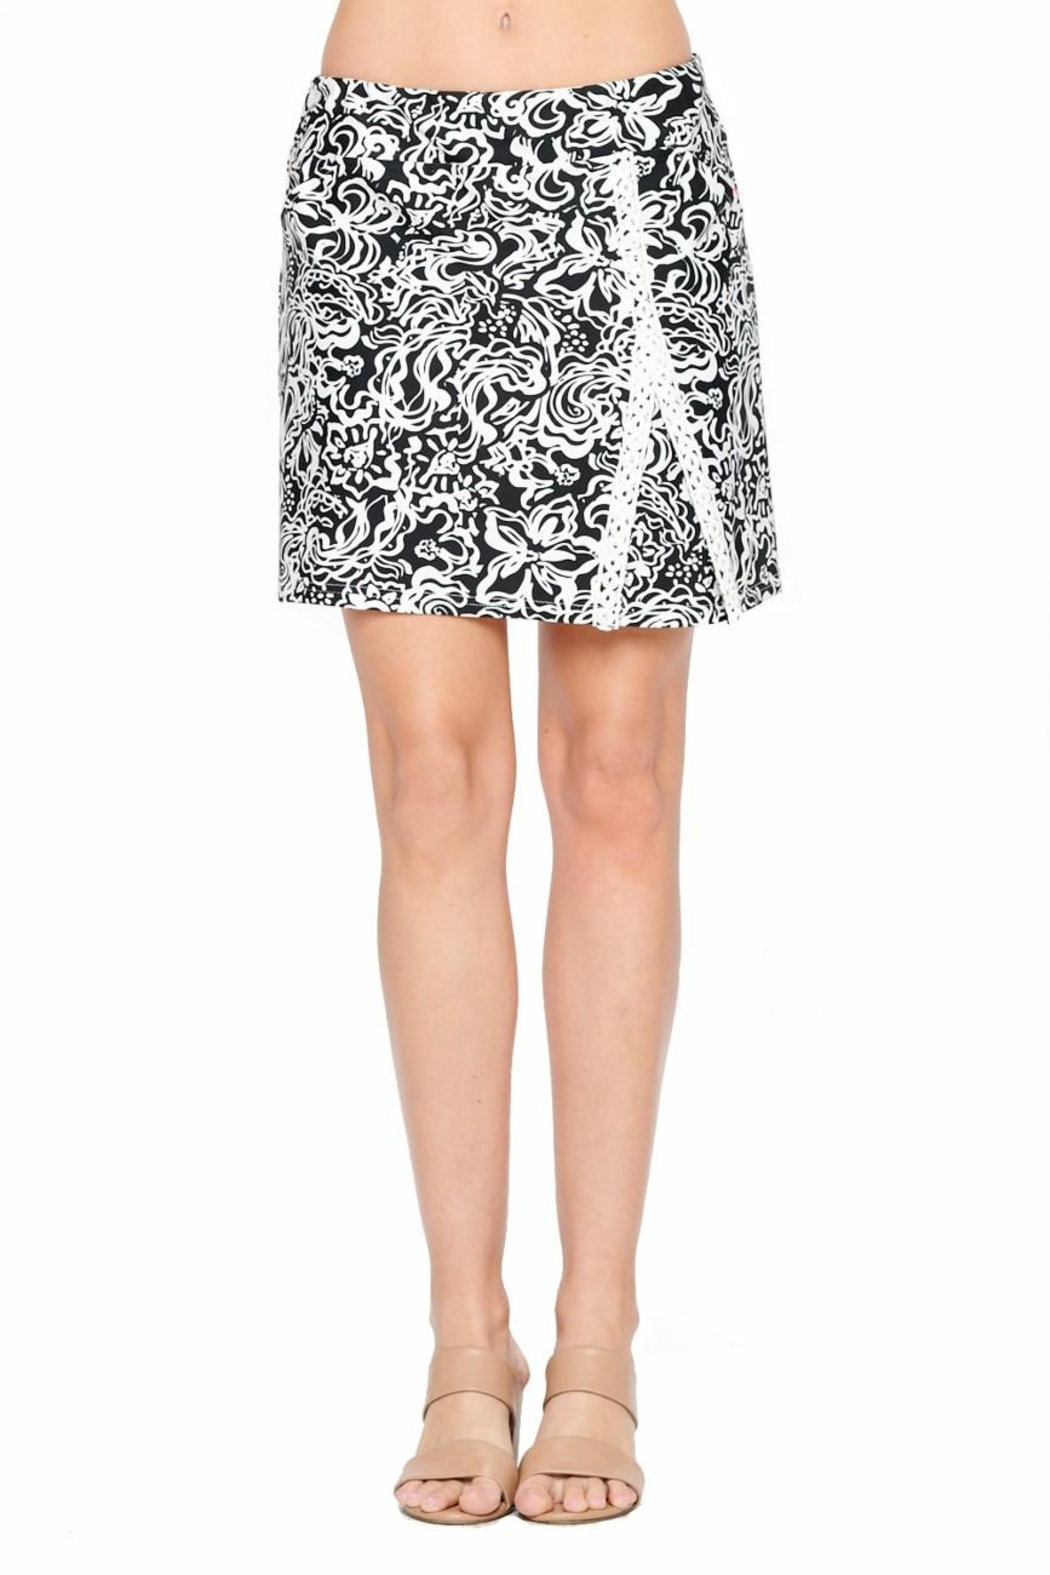 Aryeh Black And White Lace Detail Skort - Main Image